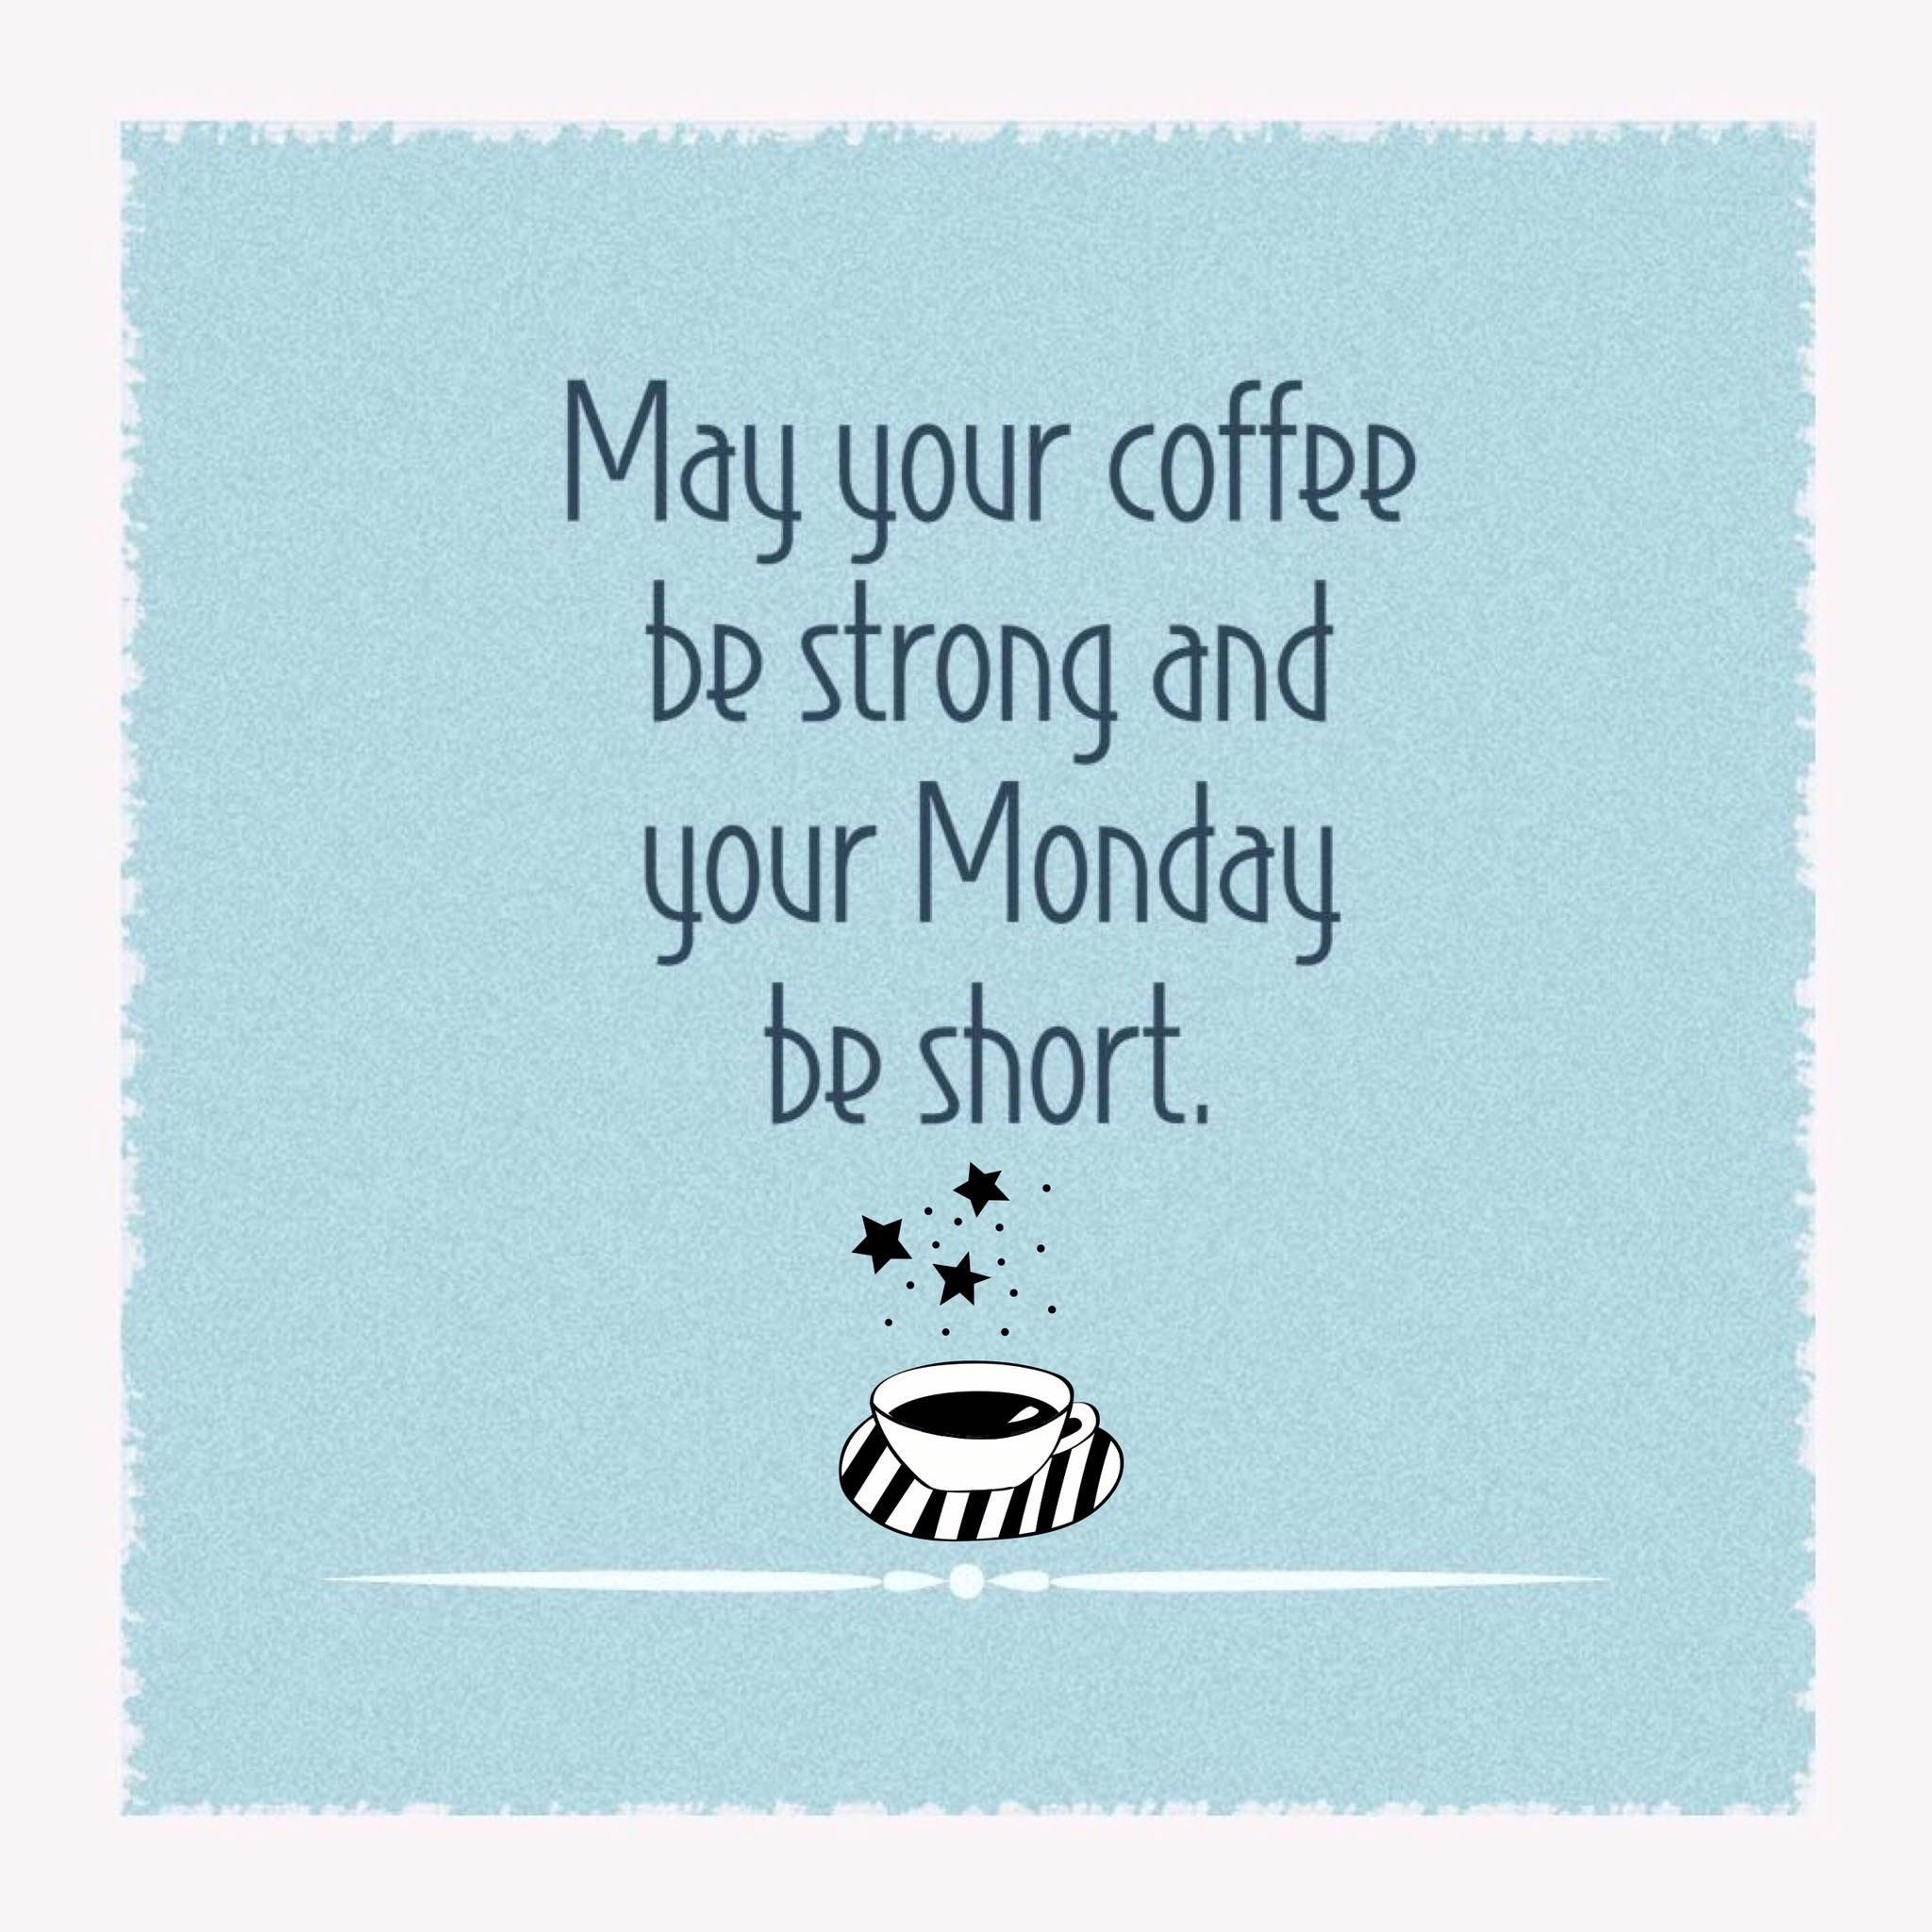 Monday Coffee Carry On You Ve Got This Monday Quotes Monday Morning Quotes Monday Humor